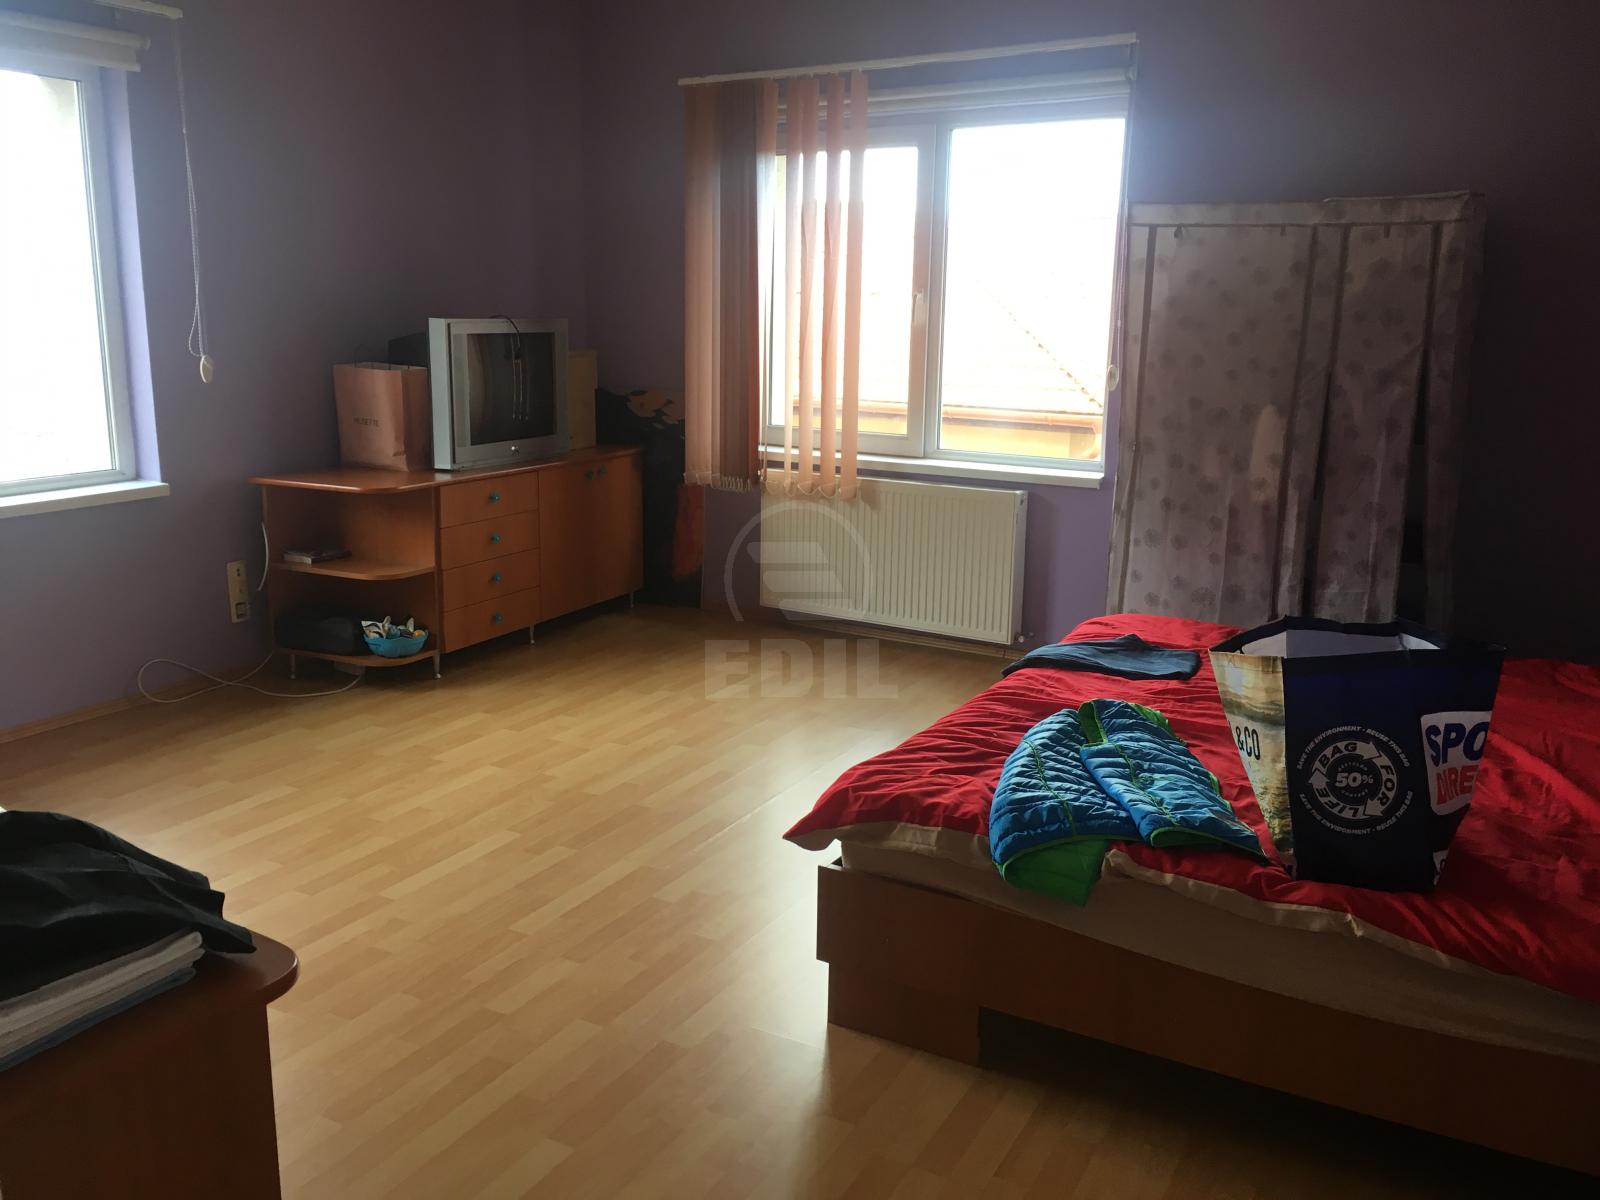 Apartment for sale 3 rooms, APCJ272831-8